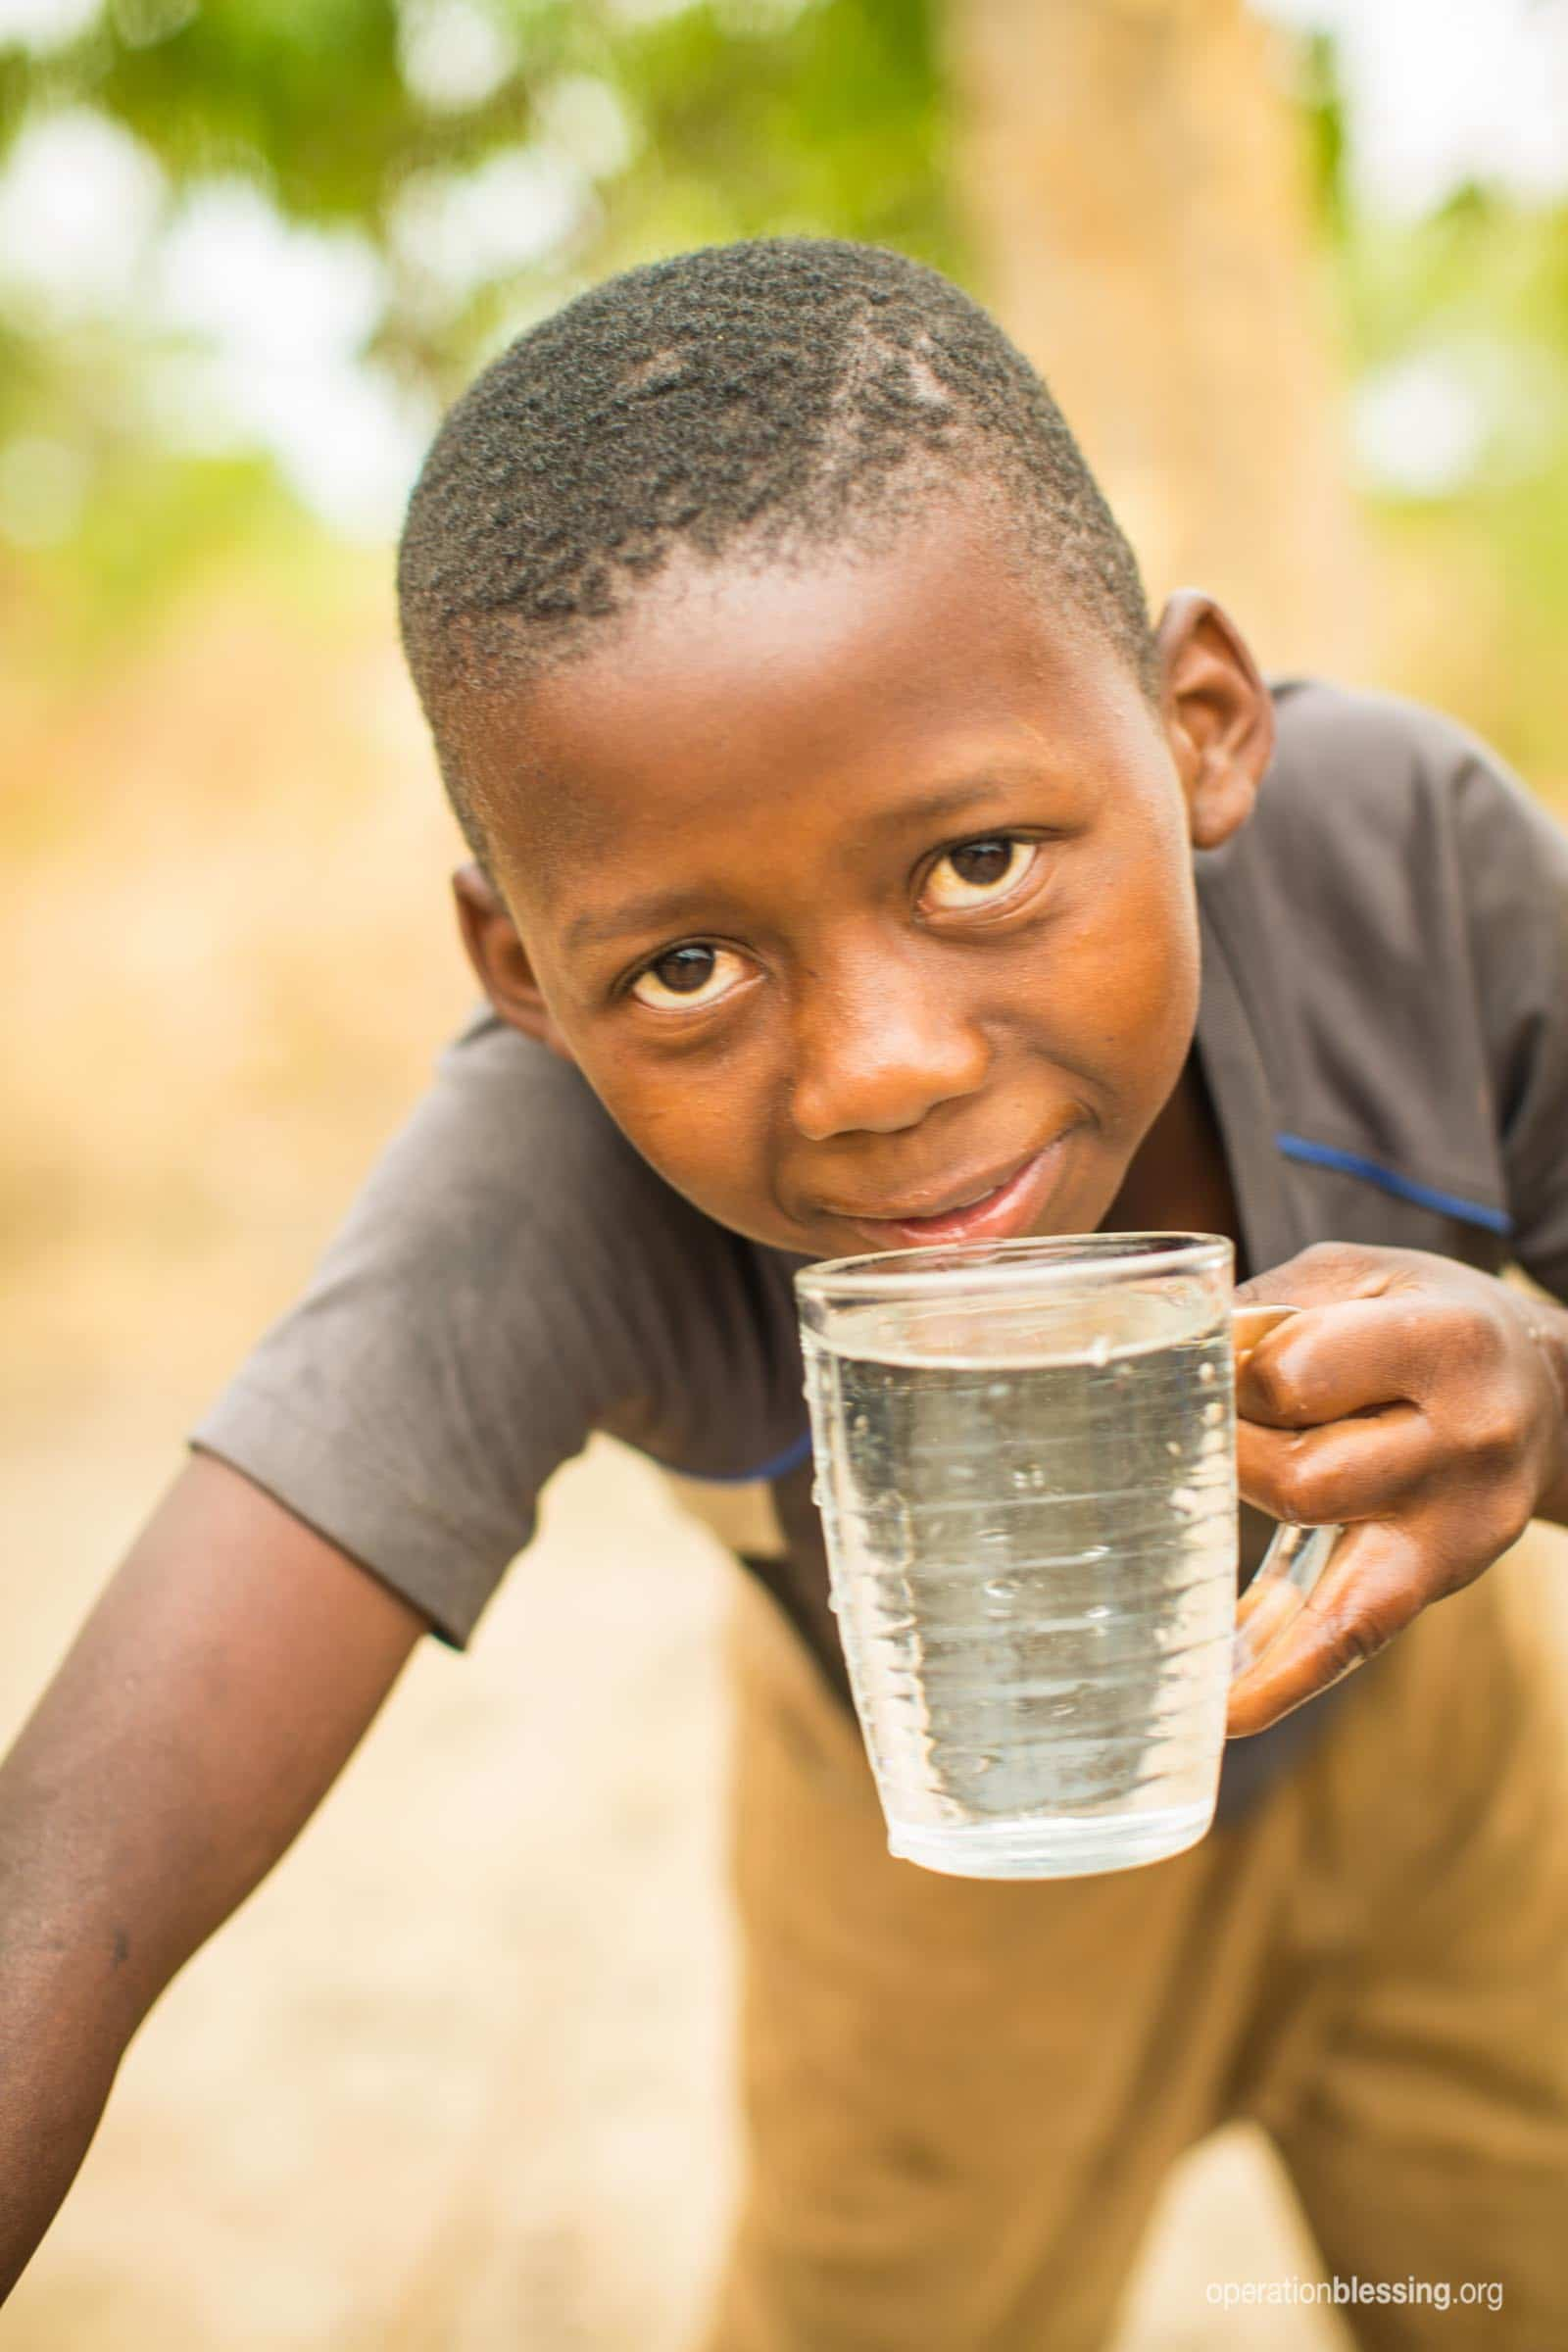 A child drinks safe water.